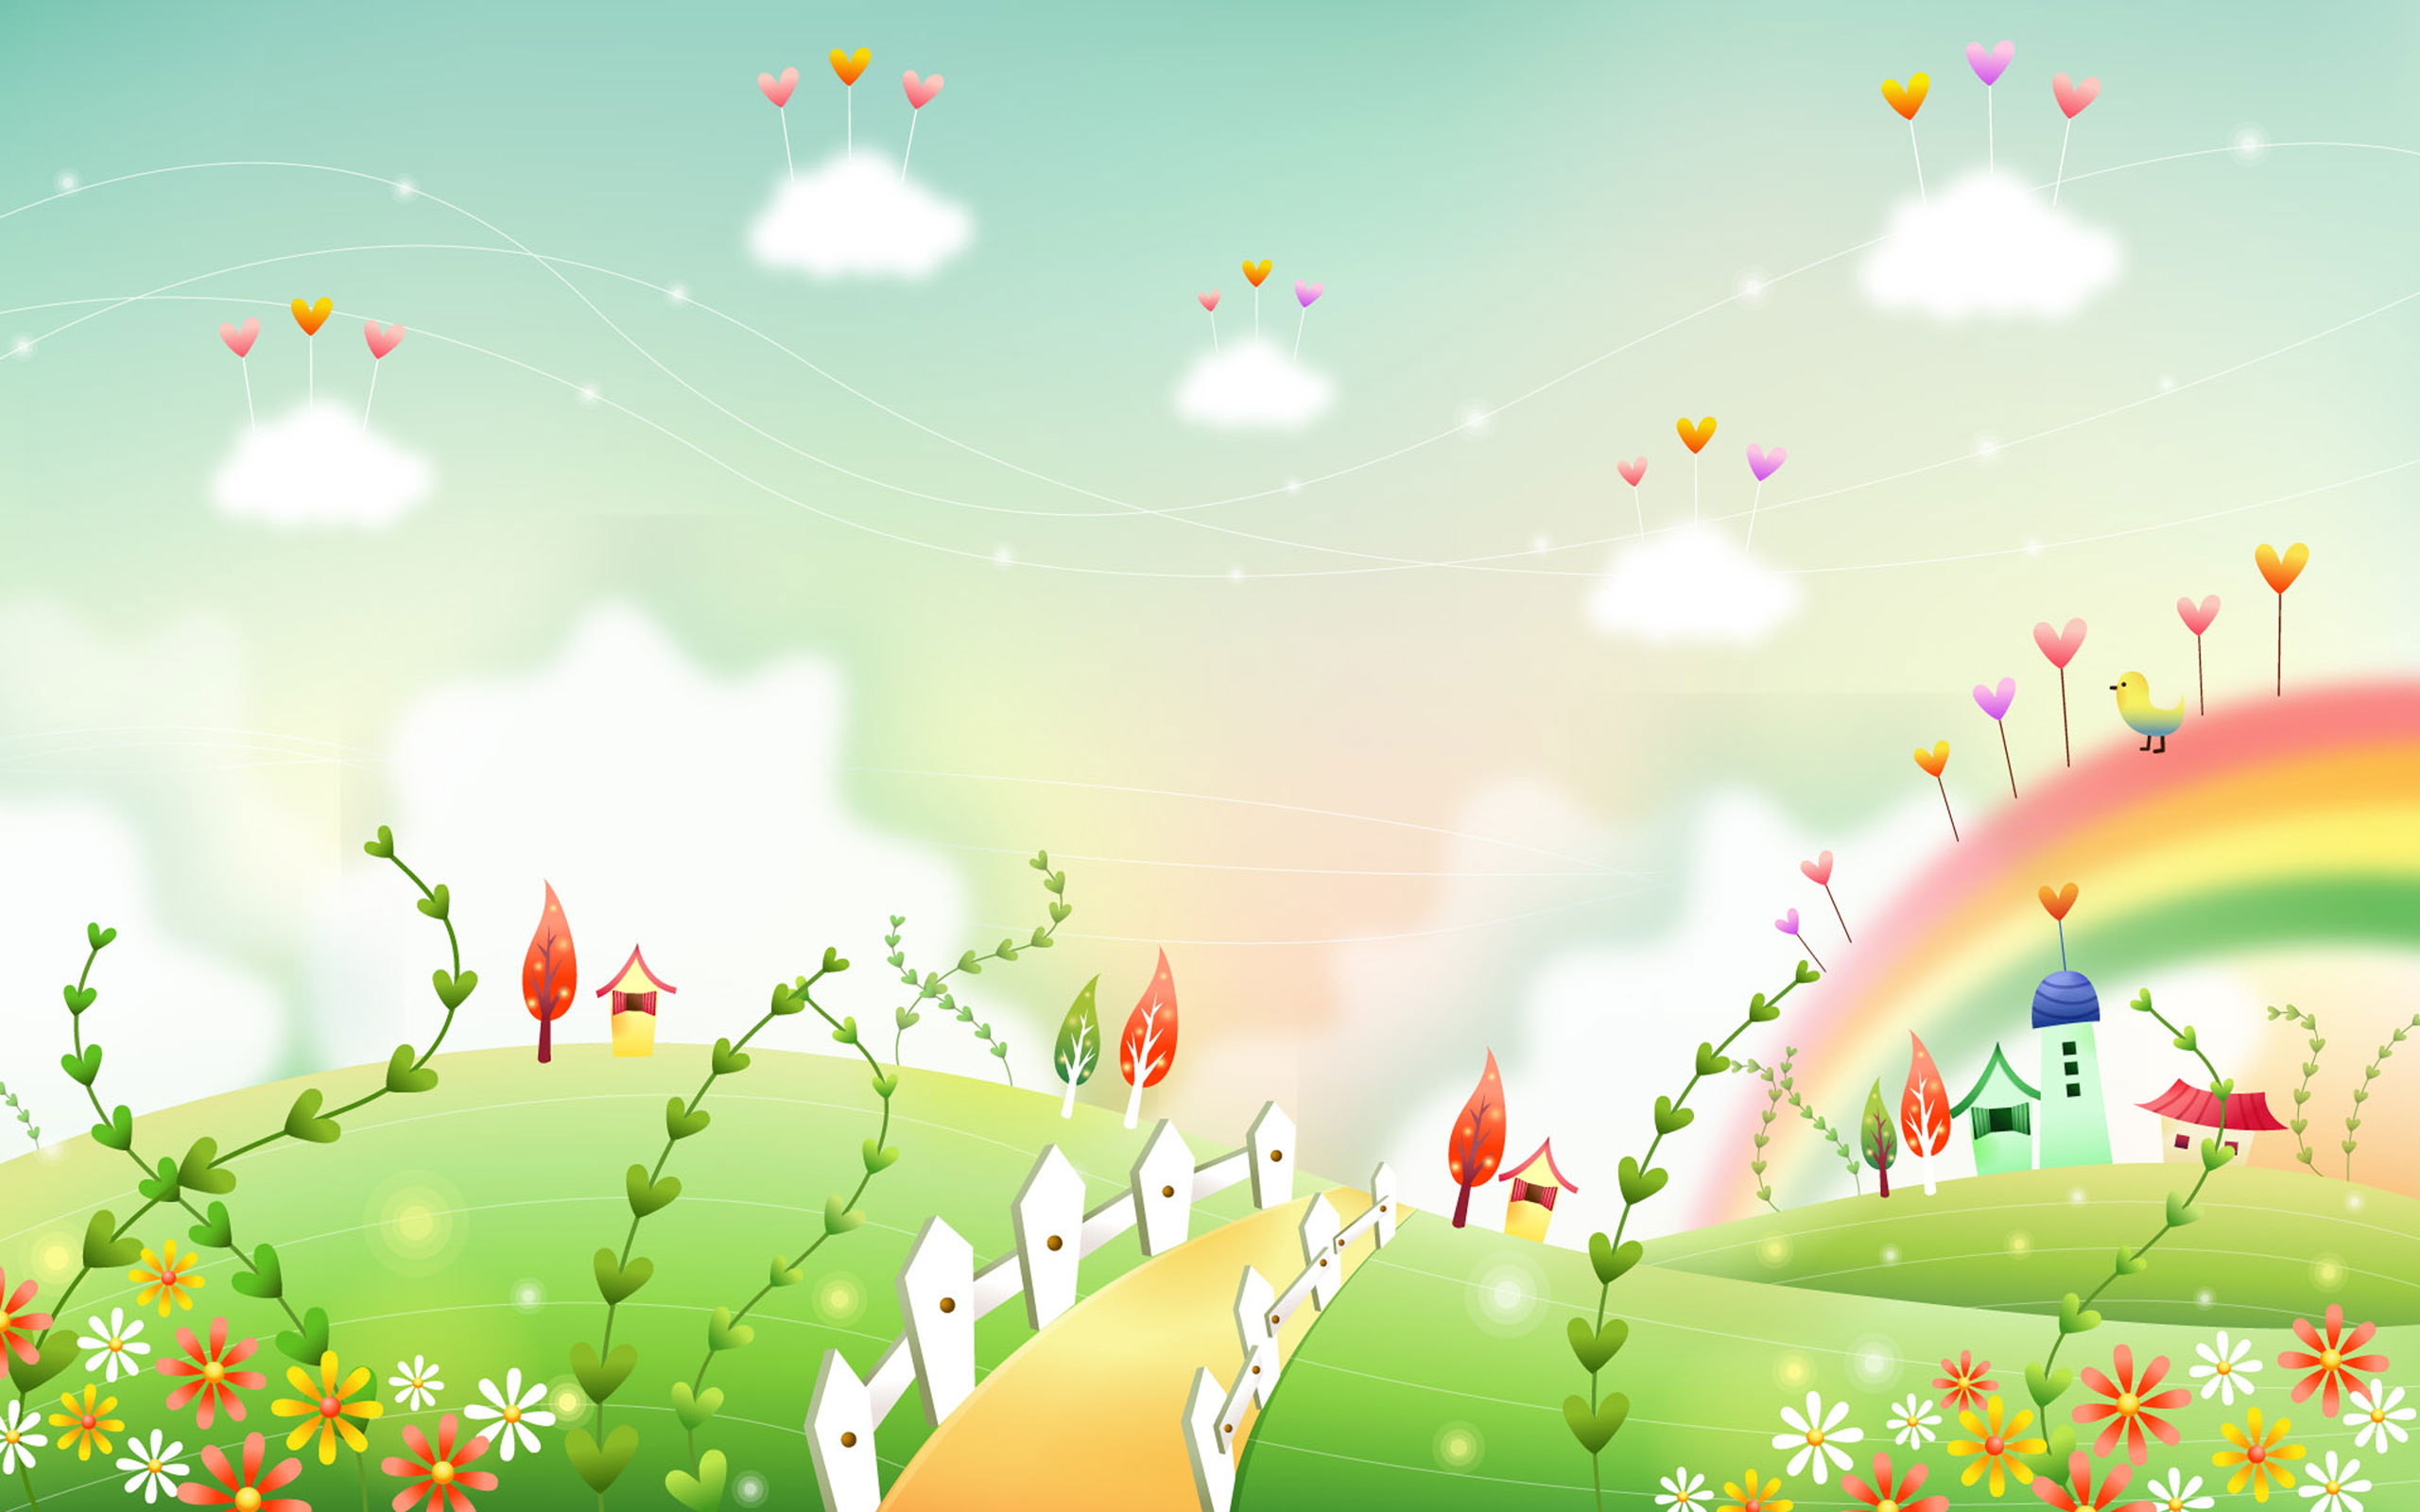 Animated Wallpaper For Tablet Cartoon Hd Wallpapers High Quality Pixelstalk Net